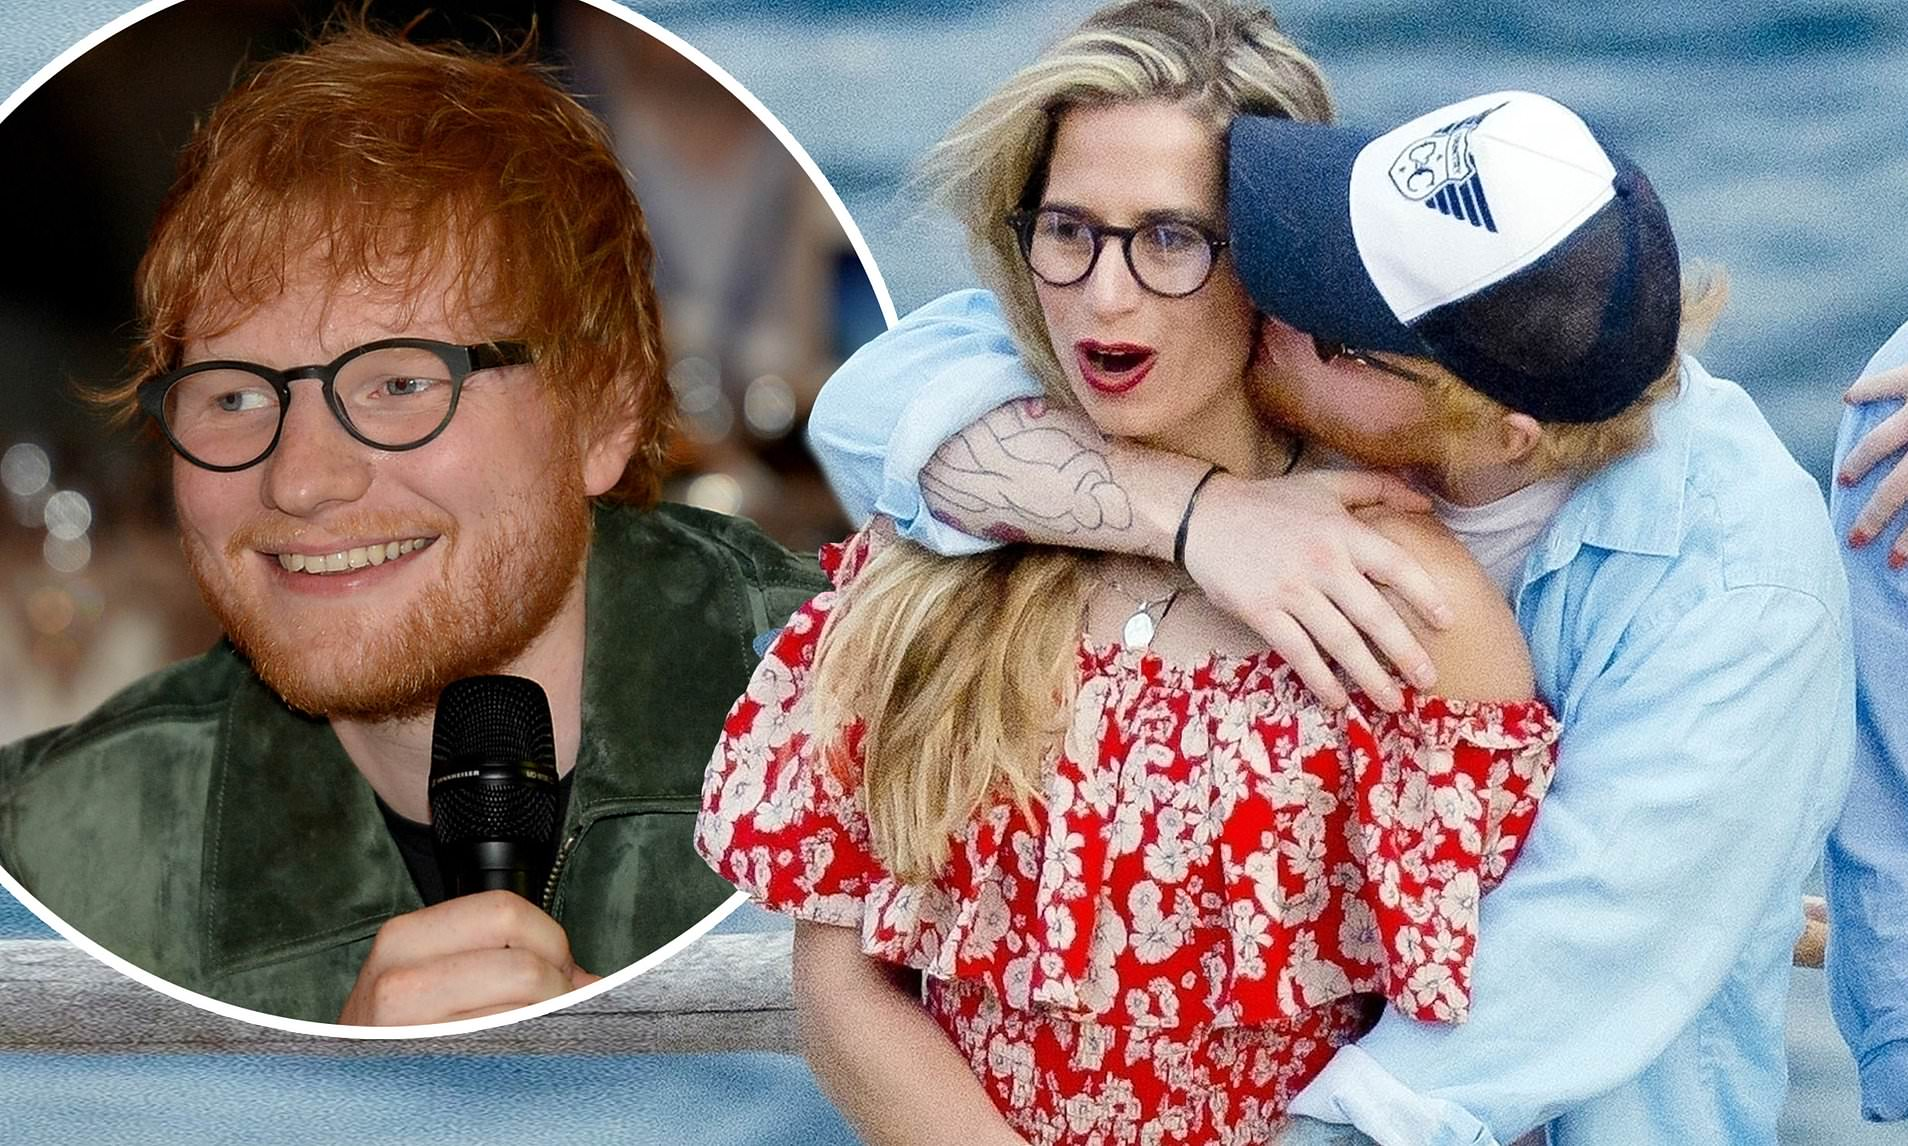 Ed Sheeran And Wife Cherry Seaborn Expecting Their First Child Together